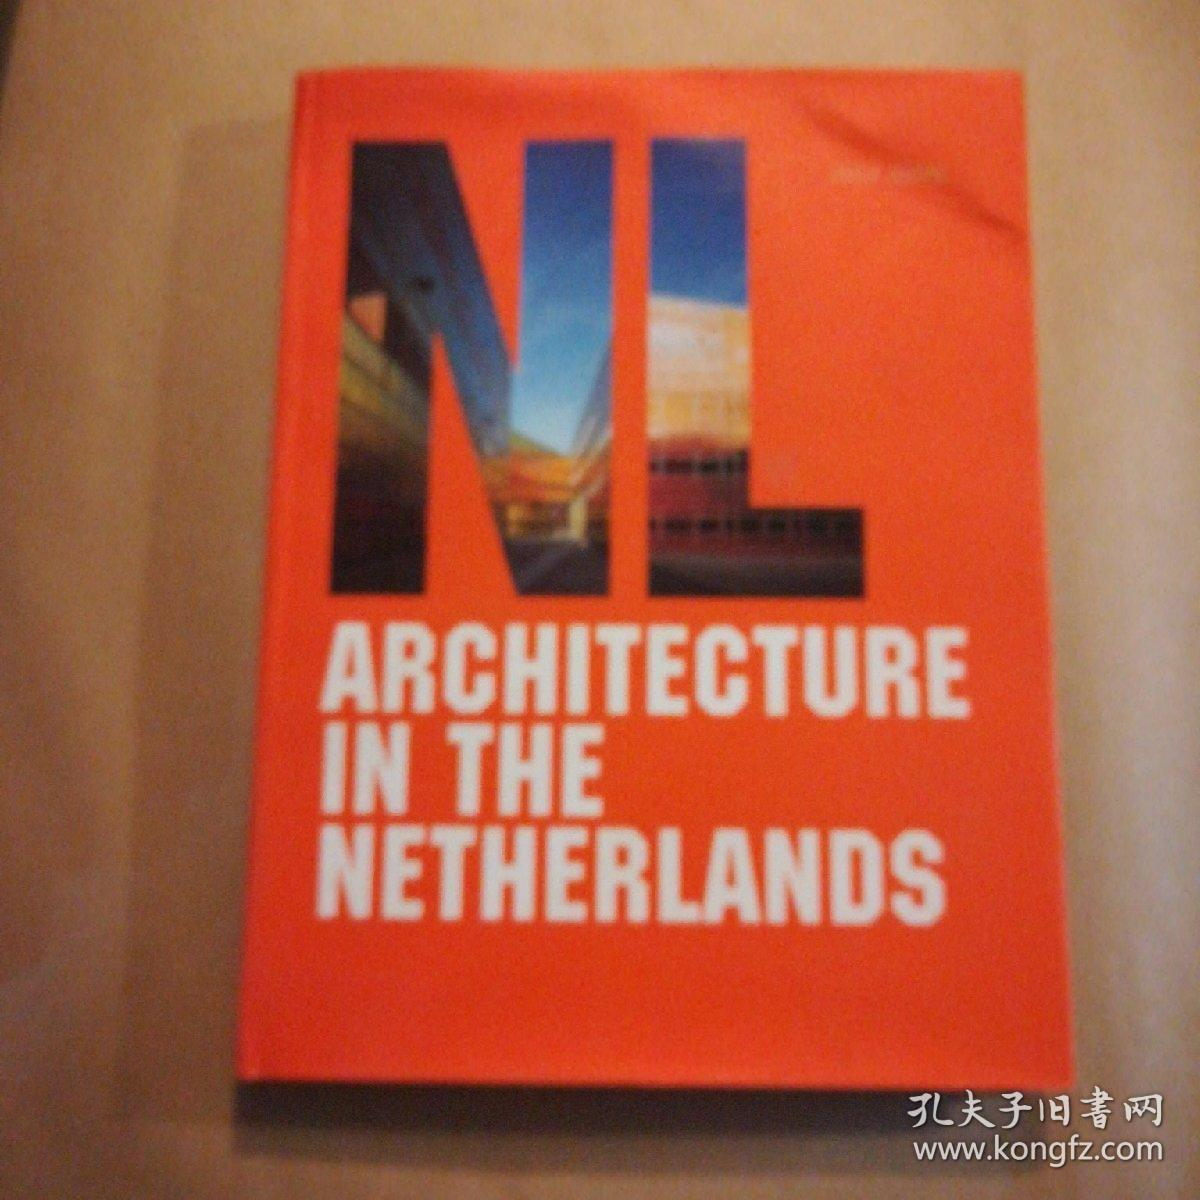 ARCHITECTURE IN THE NETHERLANDS 荷兰建筑